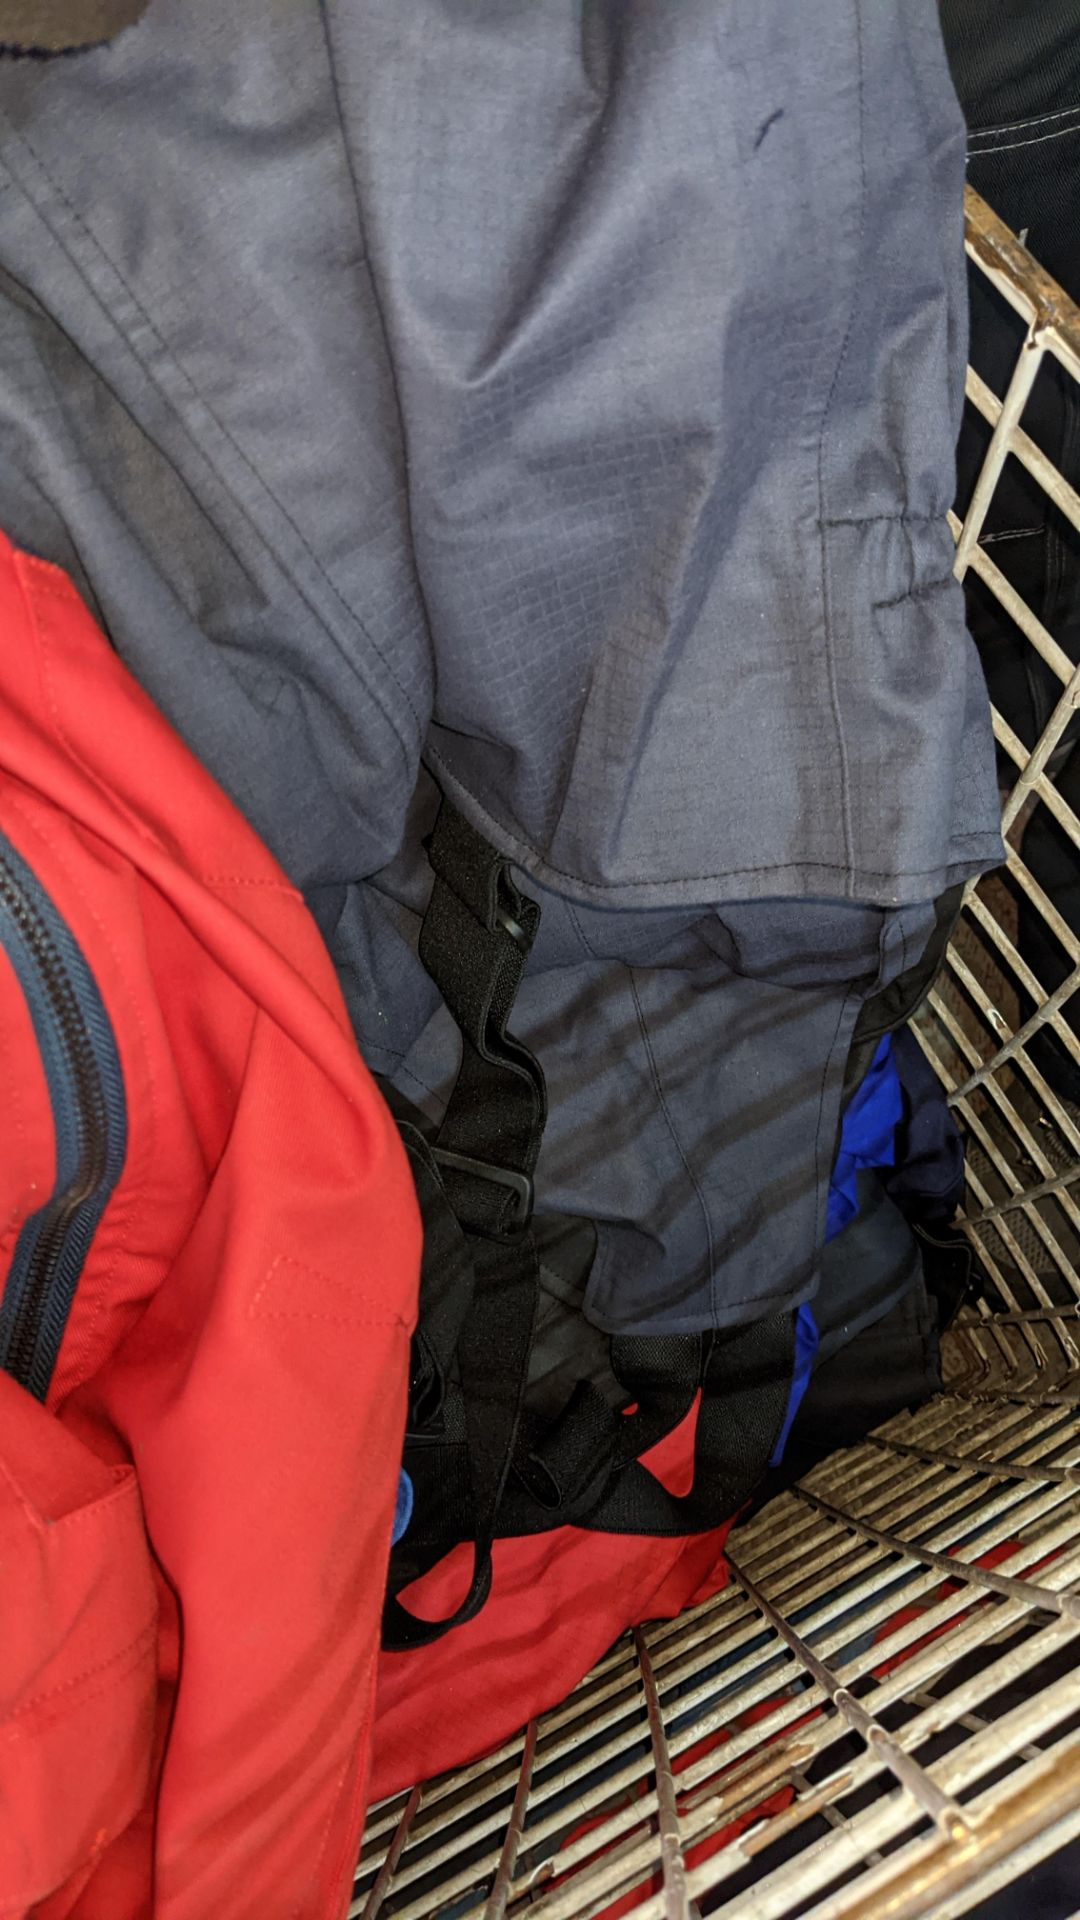 The contents of a cage of assorted work clothing. NB cage excluded - Image 7 of 8